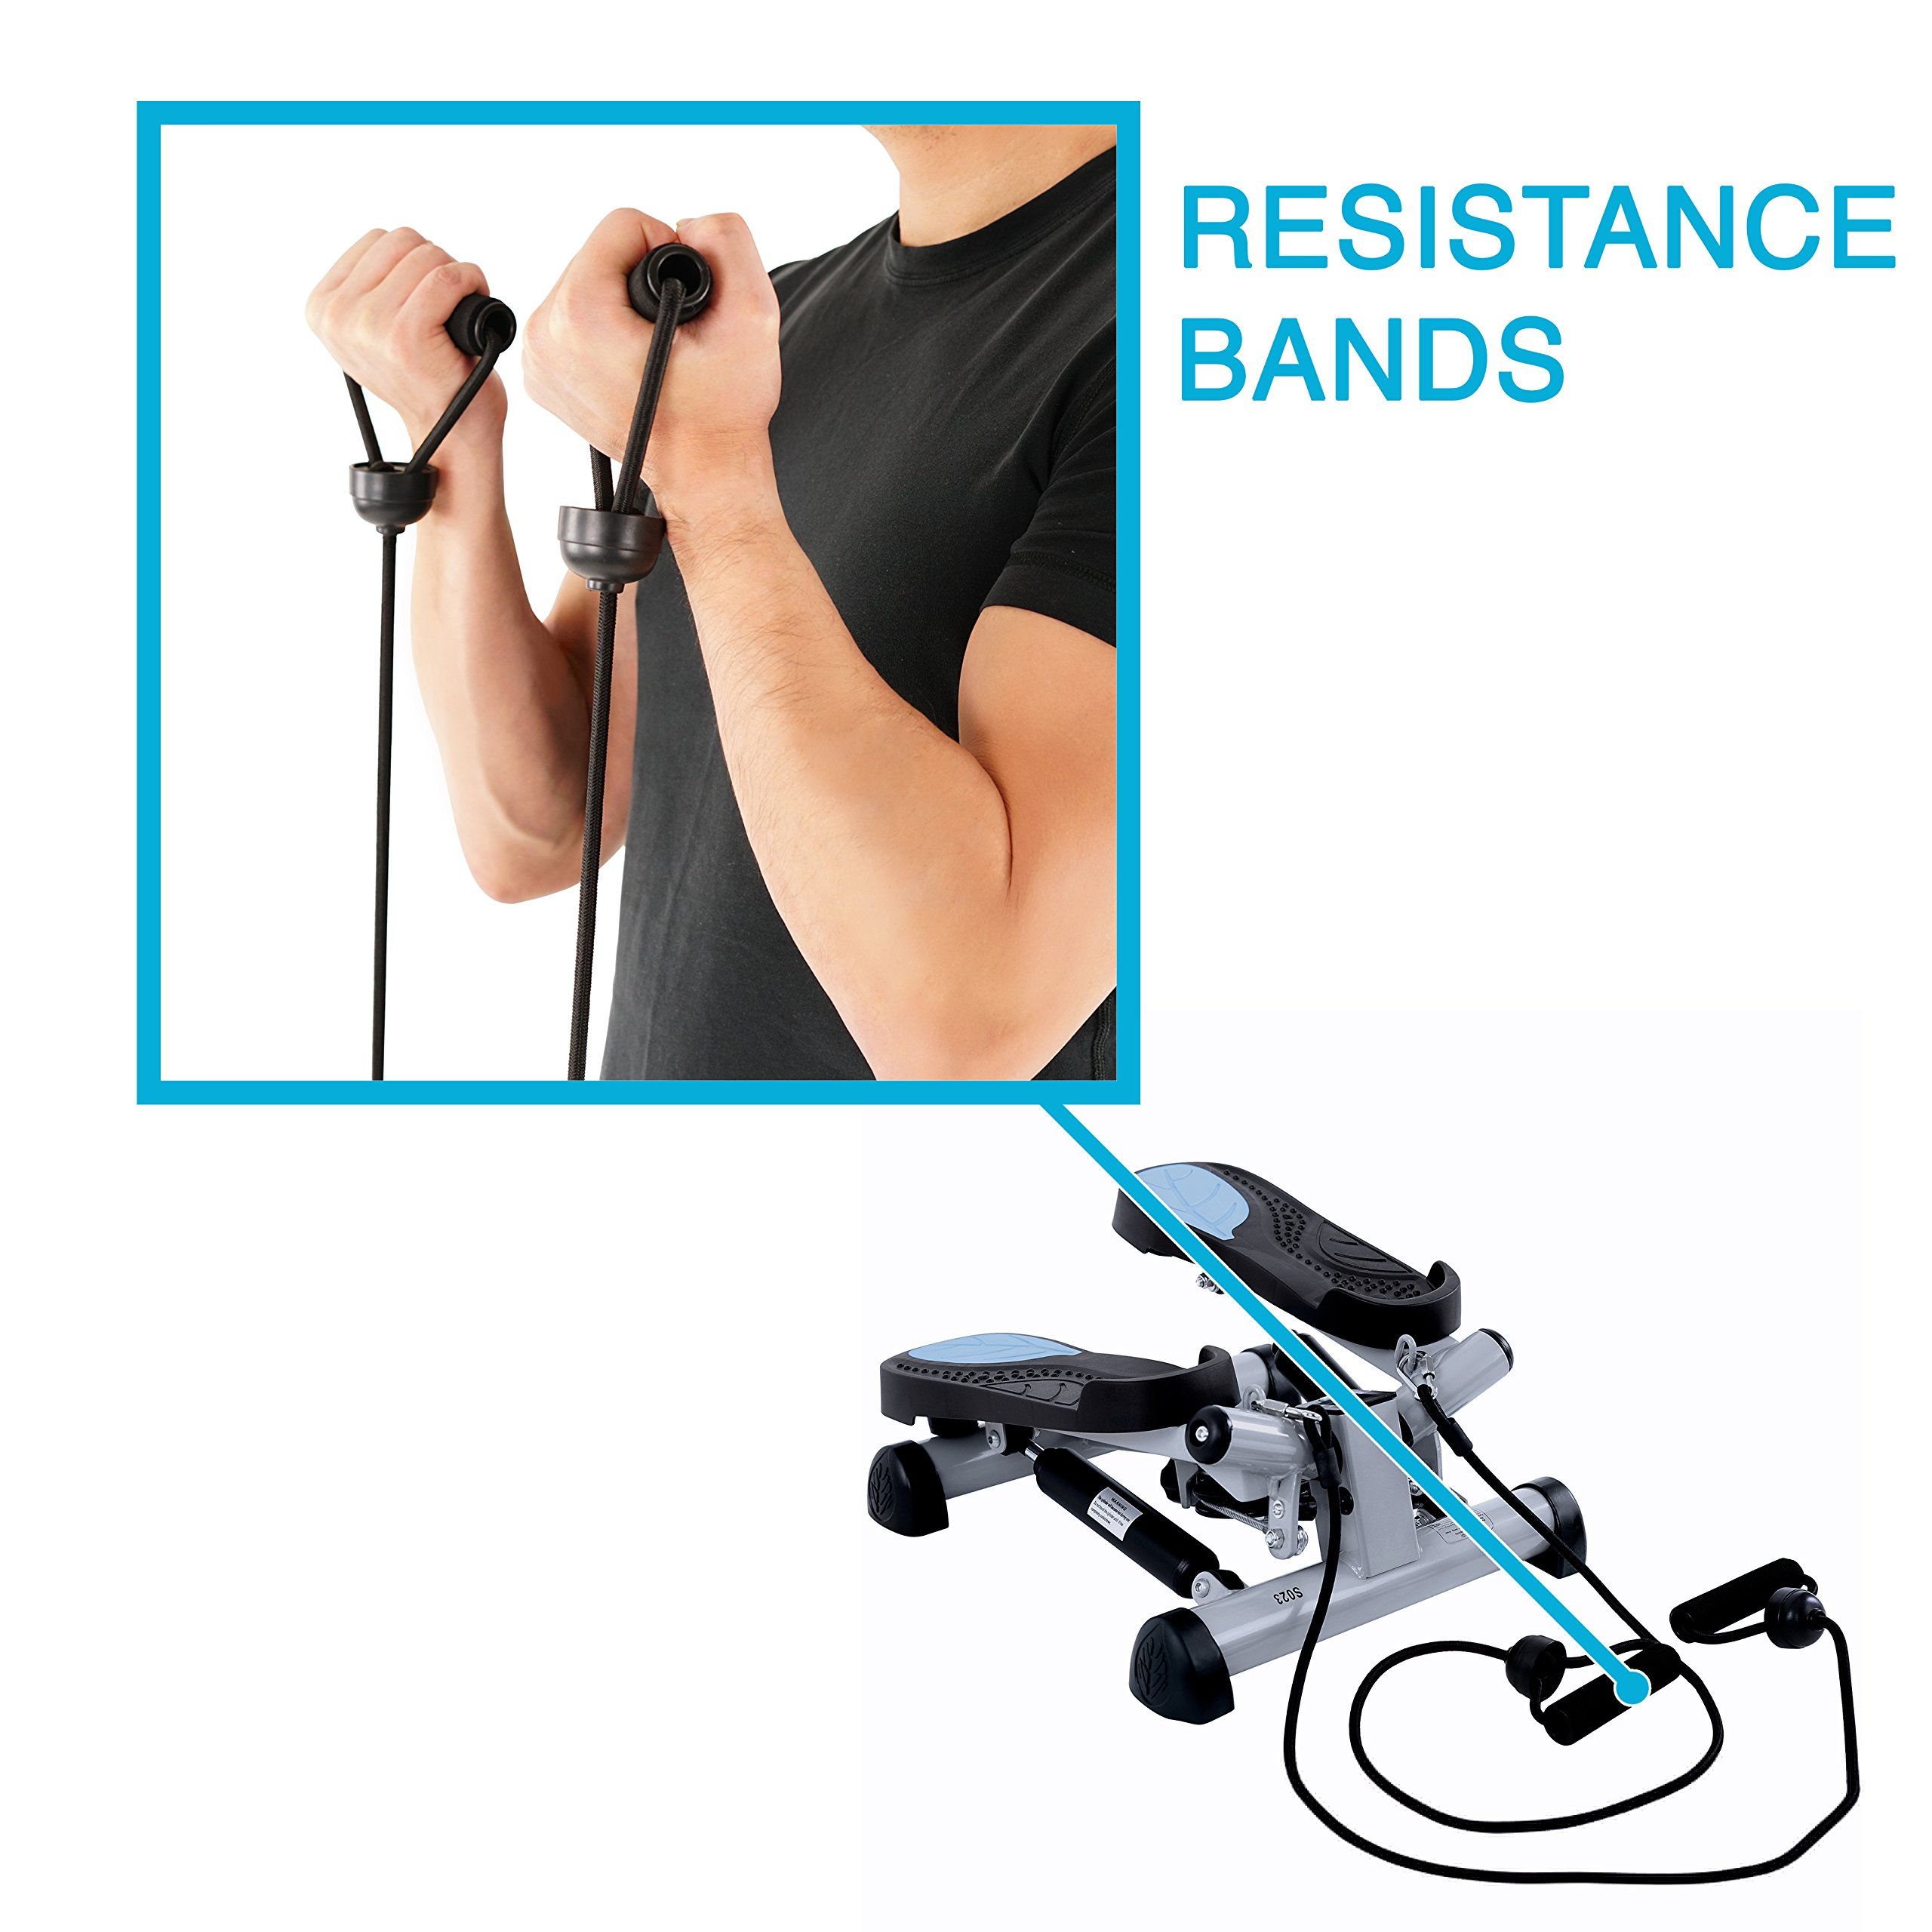 EFITMENT Twist Fitness Stepper Step Machine with Resistance Bands for Fitness & Exercise - S023 by EFITMENT (Image #2)